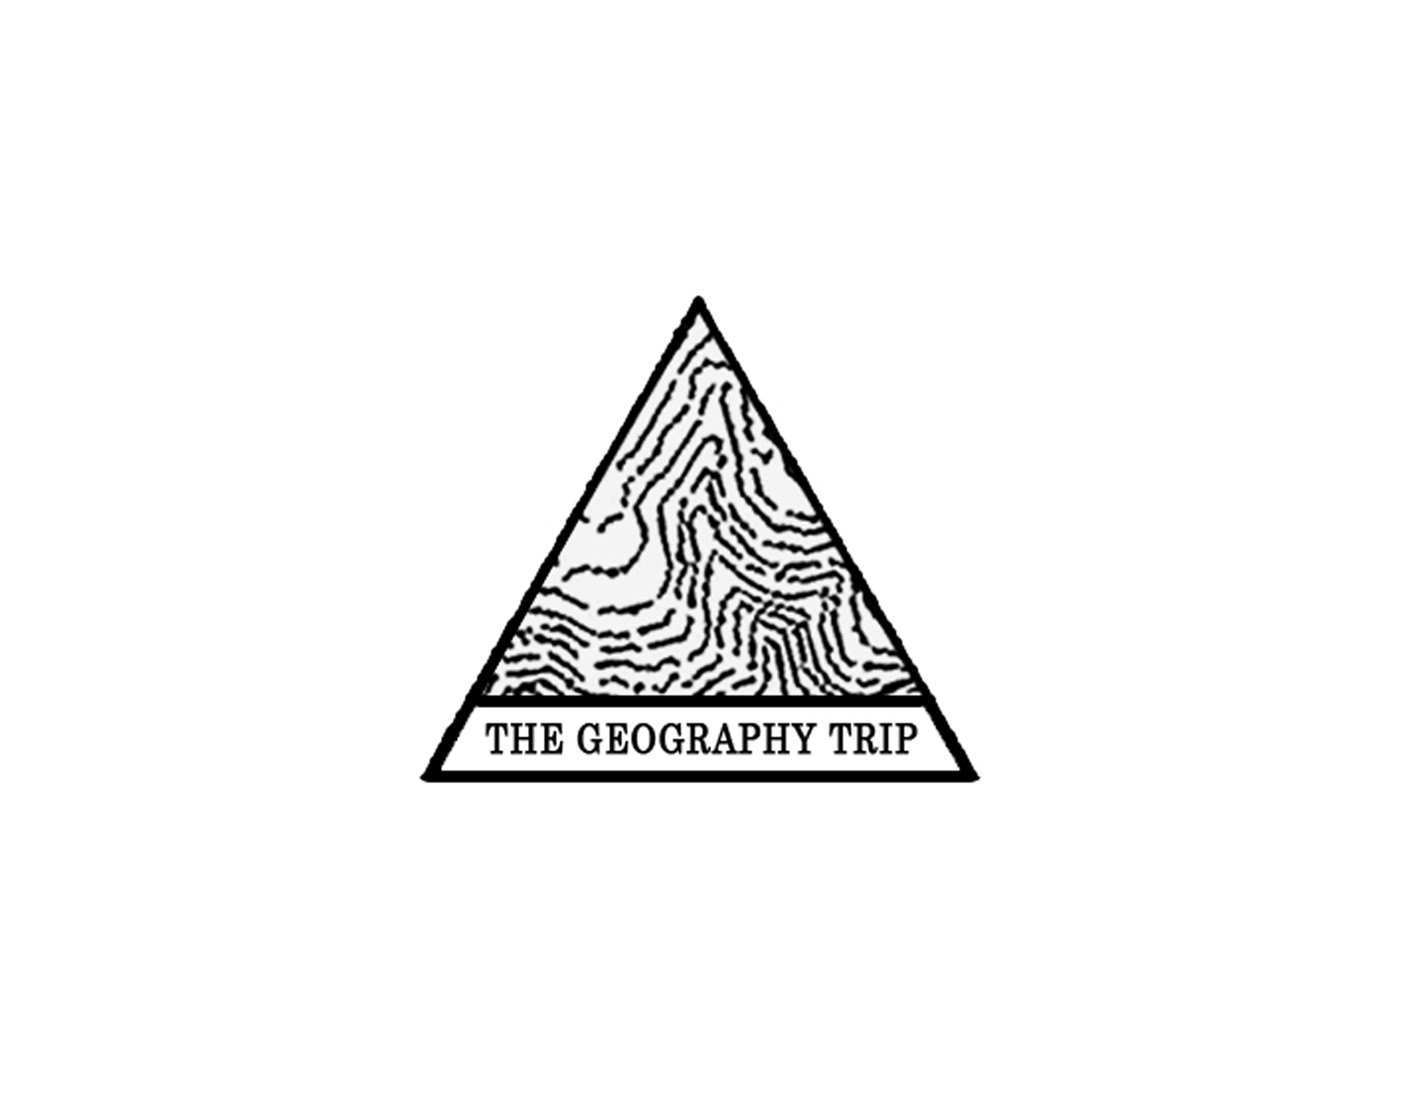 The Geography Trip Logo Design By Jim Bestall